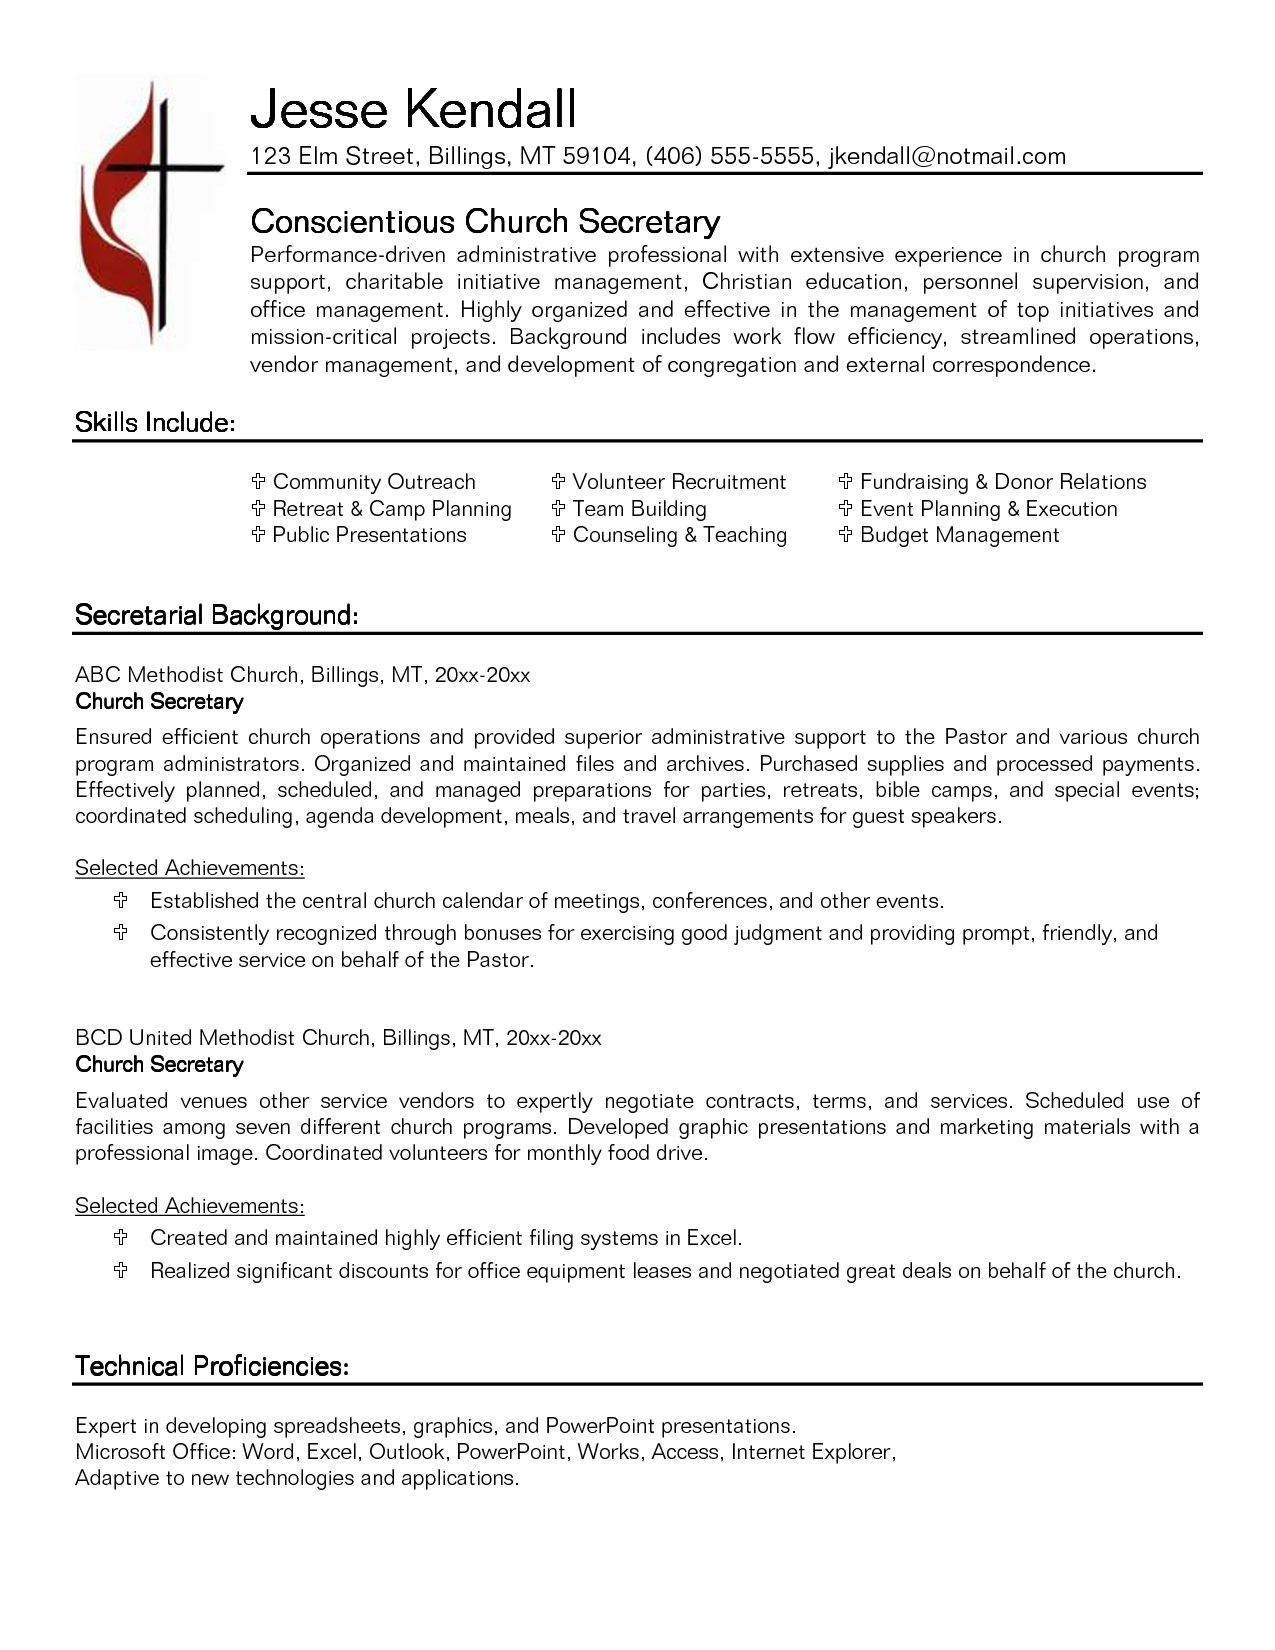 legal secretary cv sample resume samples legal secretary ...